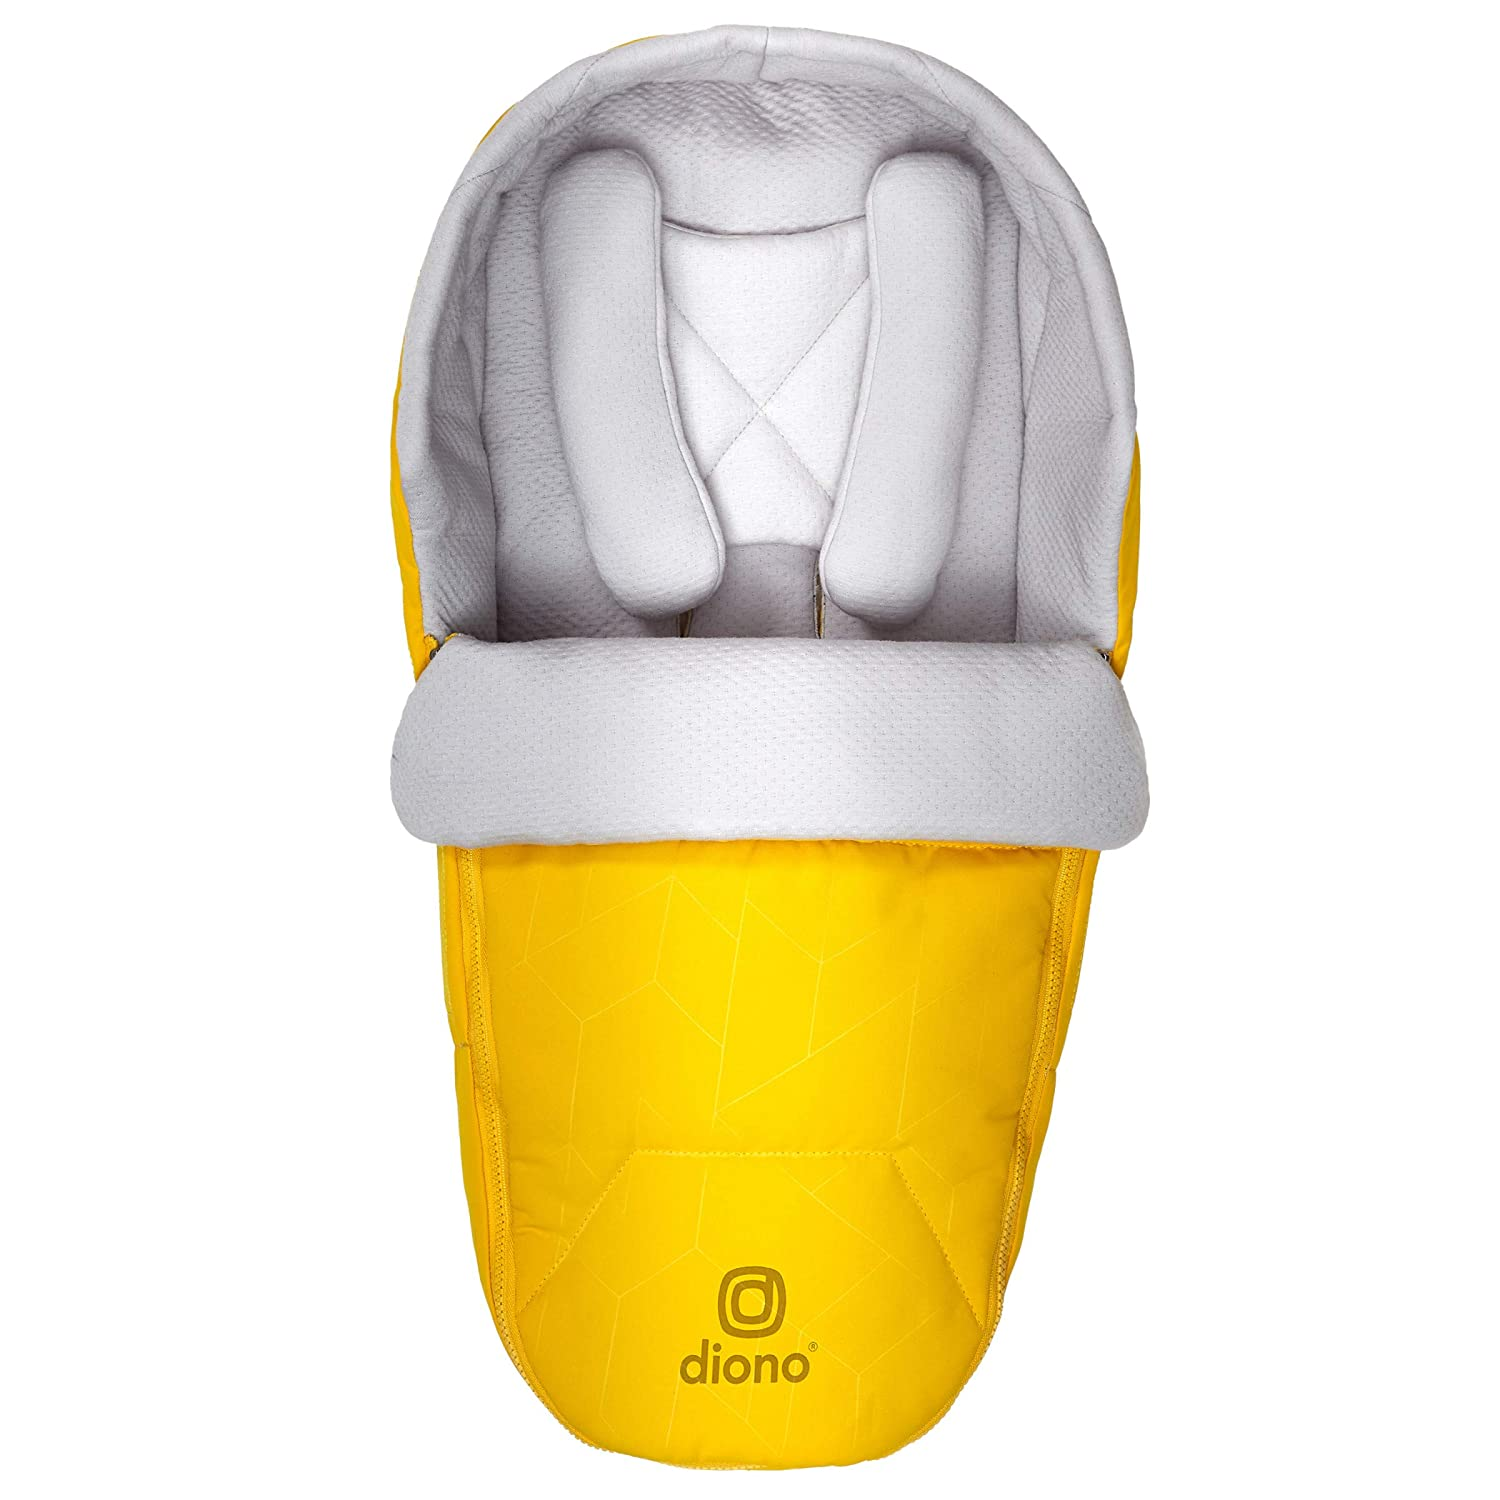 Diono Newborn Pod Stroller Footmuff for Baby, Head Body Support with Temperature Control Inside, Weatherproof, Water Resistant Lining, Universal Fit, Yellow Sulphur